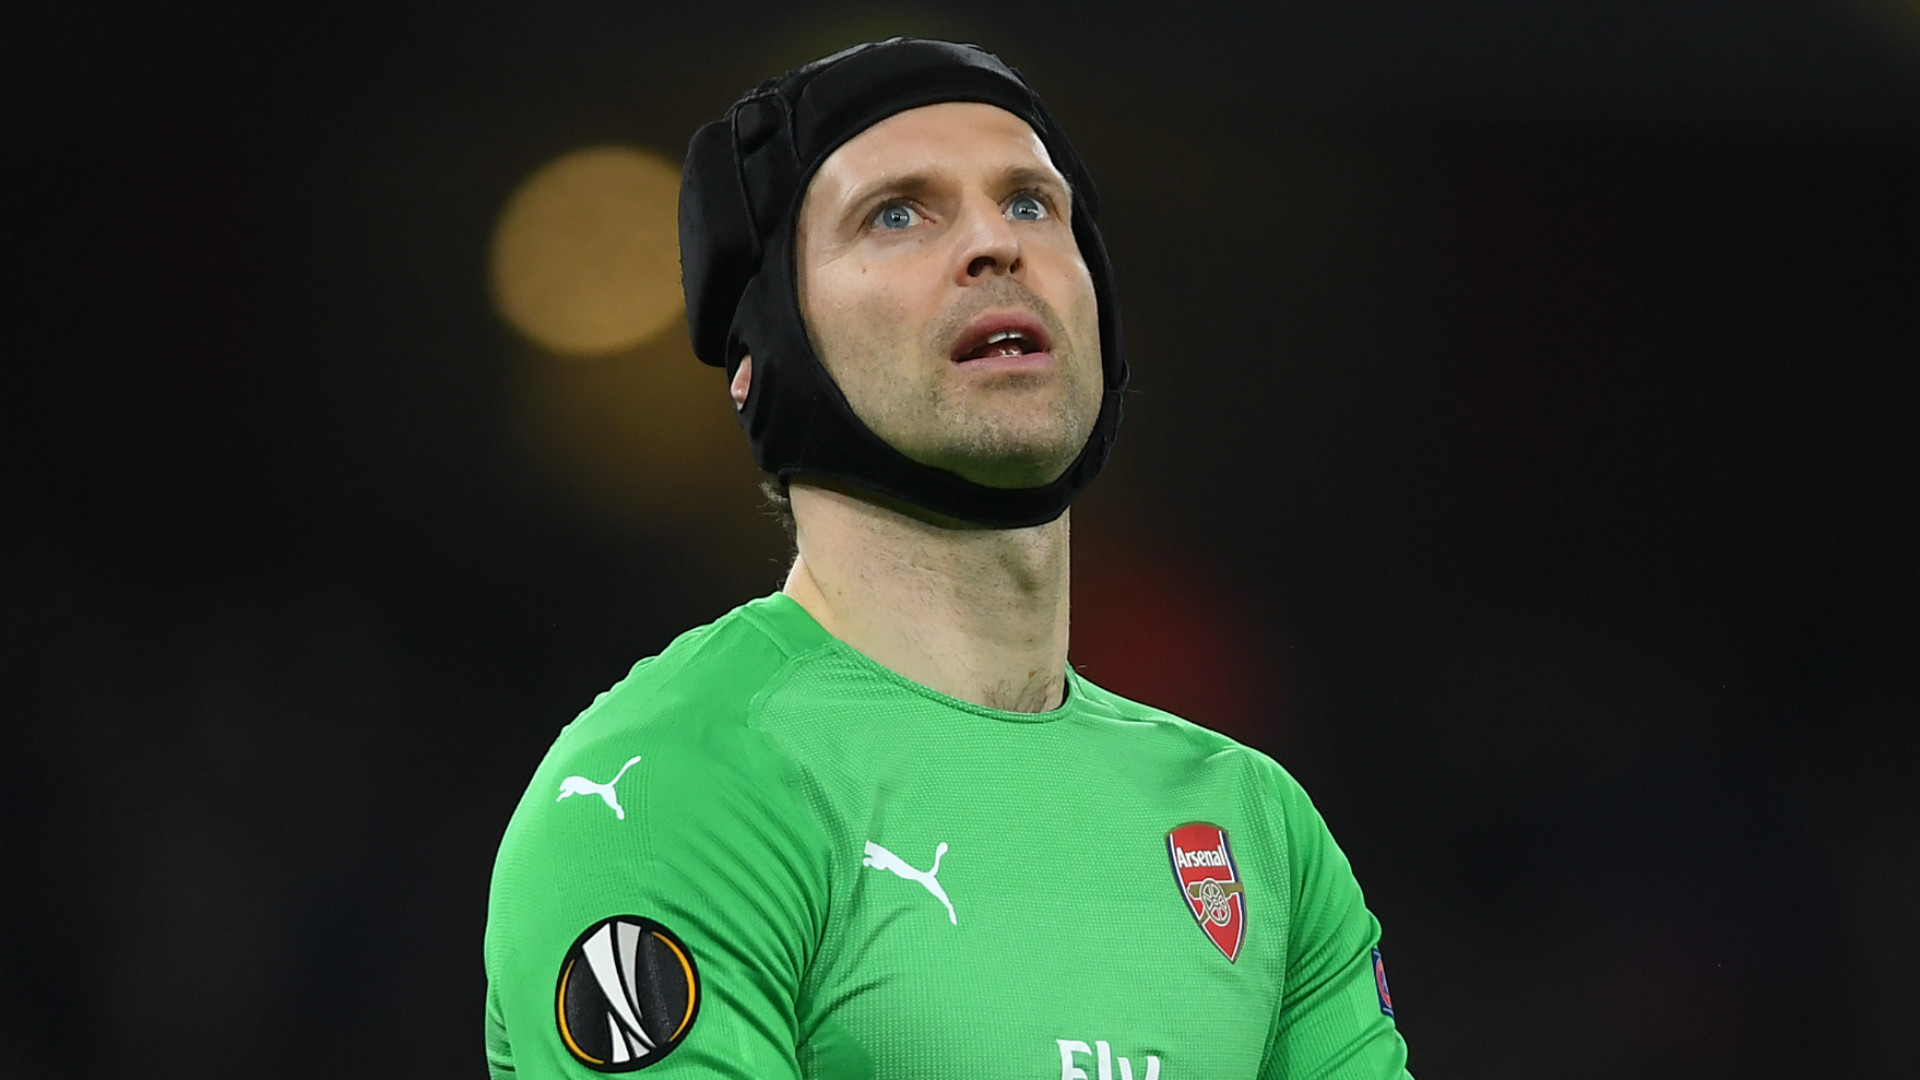 'Arsenal need this more than Chelsea' - Seaman says Leno not Cech should start Europa League final